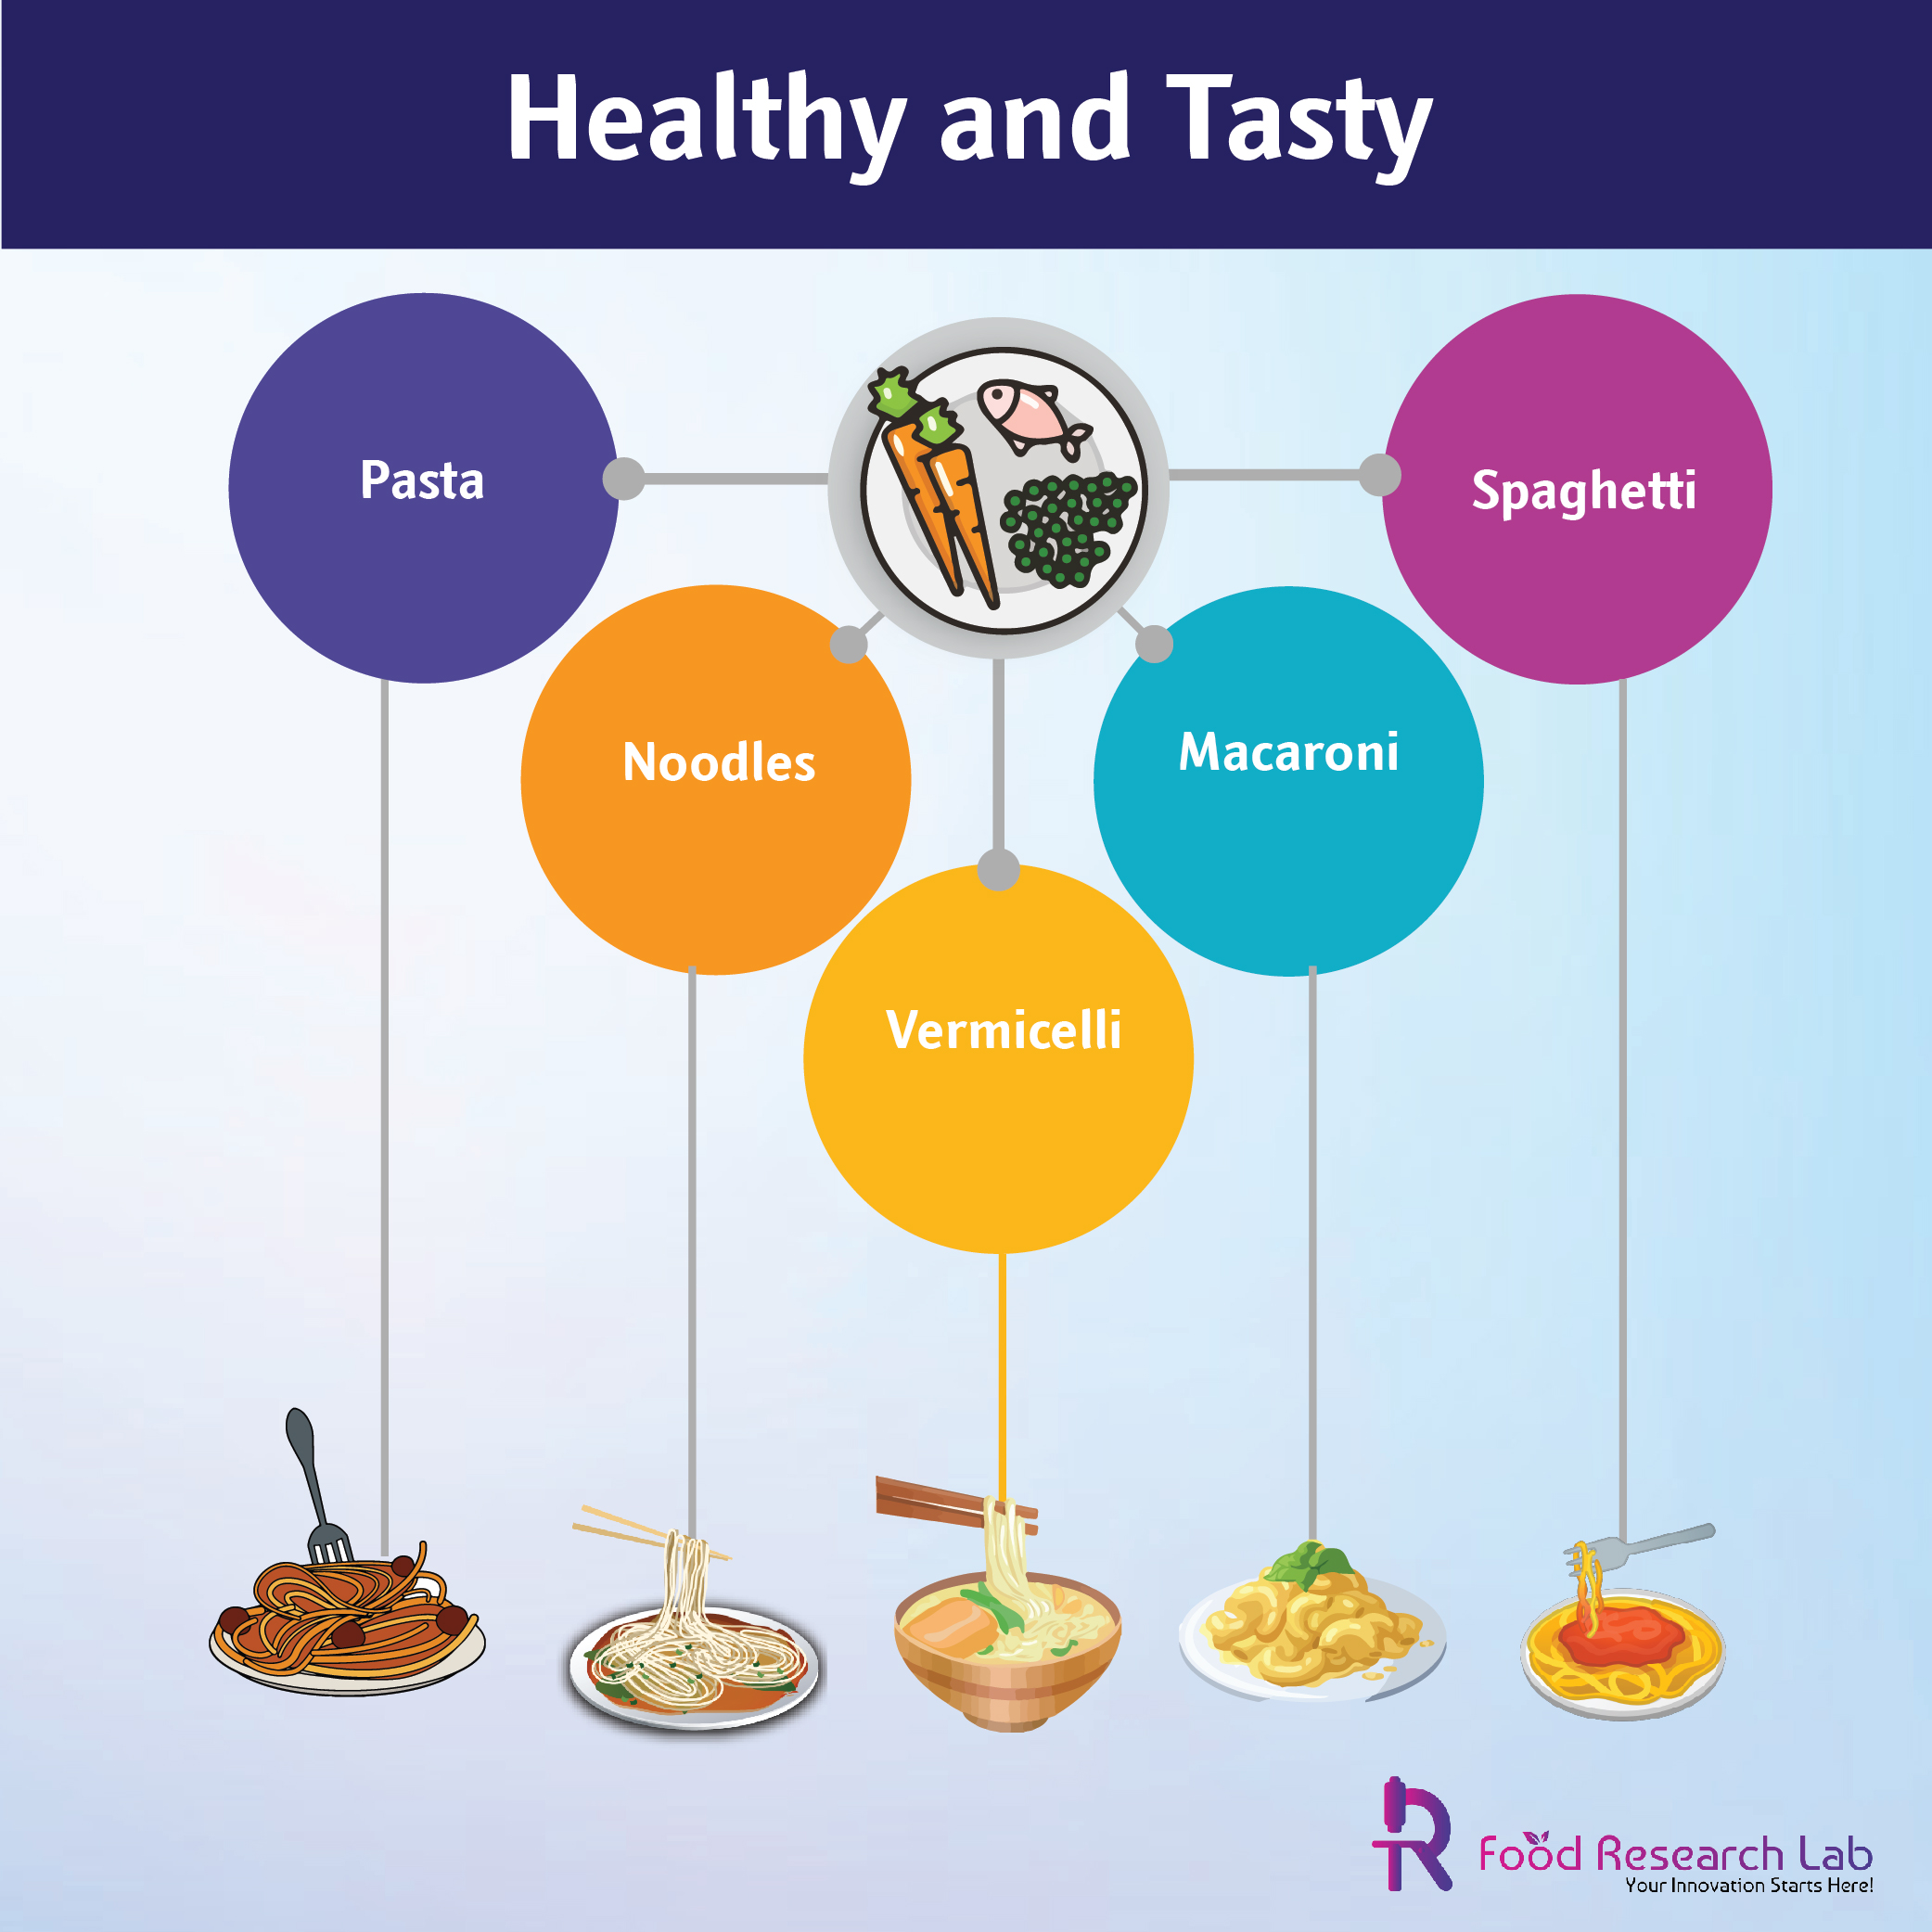 Now Healthier and Tastier Pasta, Noodles, vermicelli, Macaroni and Spaghetti New Product formulation